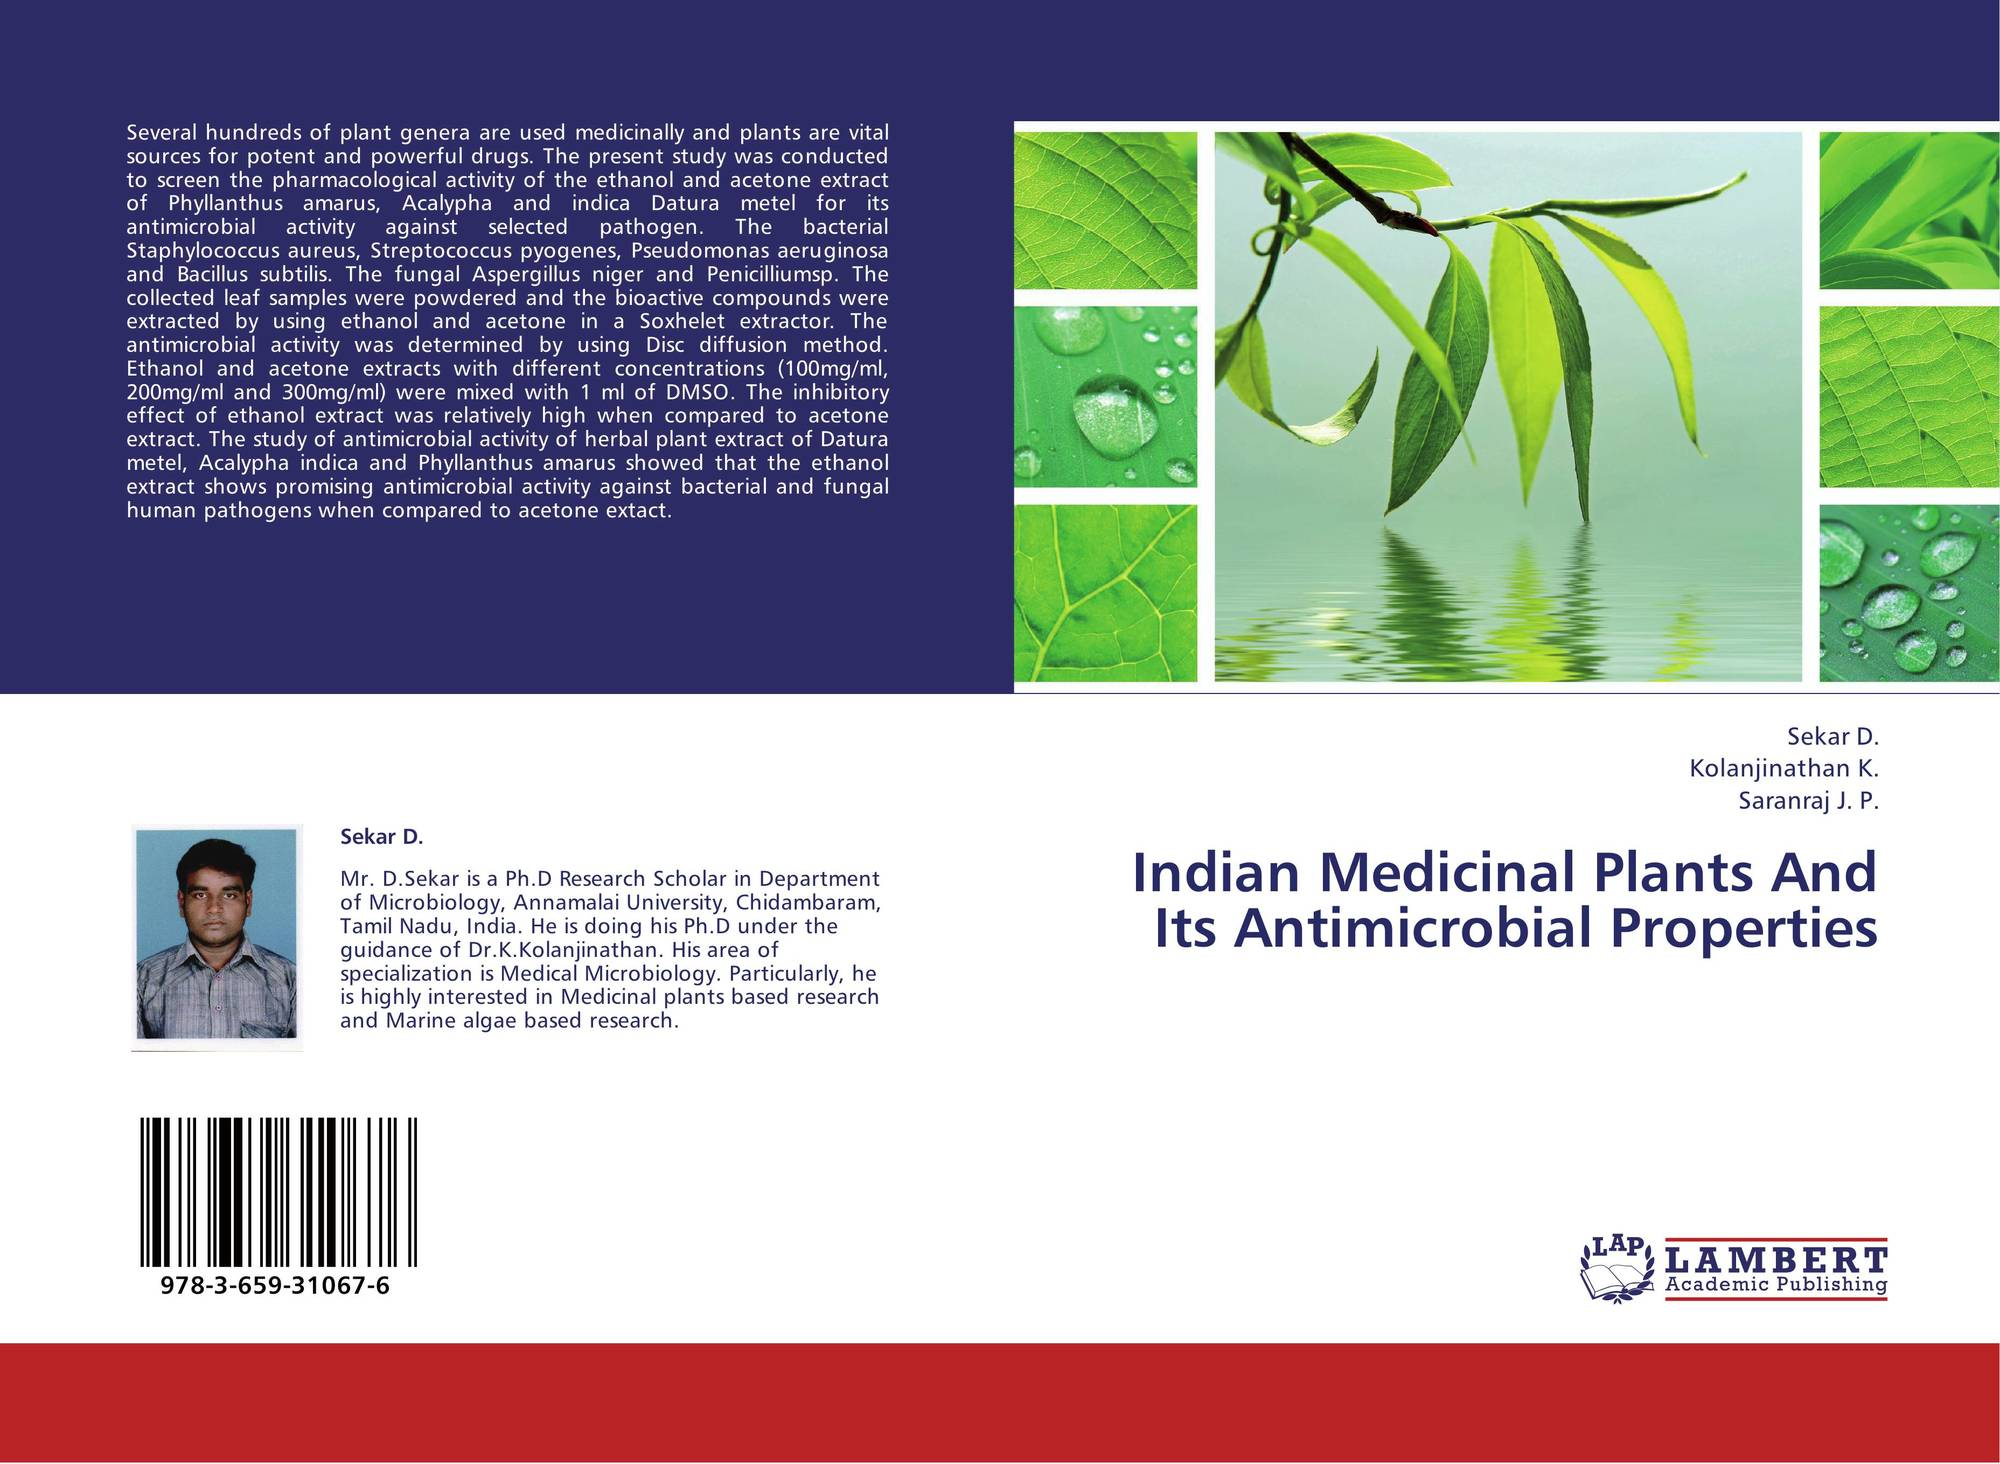 thesis on antibacterial properties of medicinal plants The in vitro antibacterial activities of 29 traditional medicinal plants used   methanolic extract of 18 plants showed antimicrobial activity against test strains   properties of plant extracts on bacterial pathogens [phd thesis],.